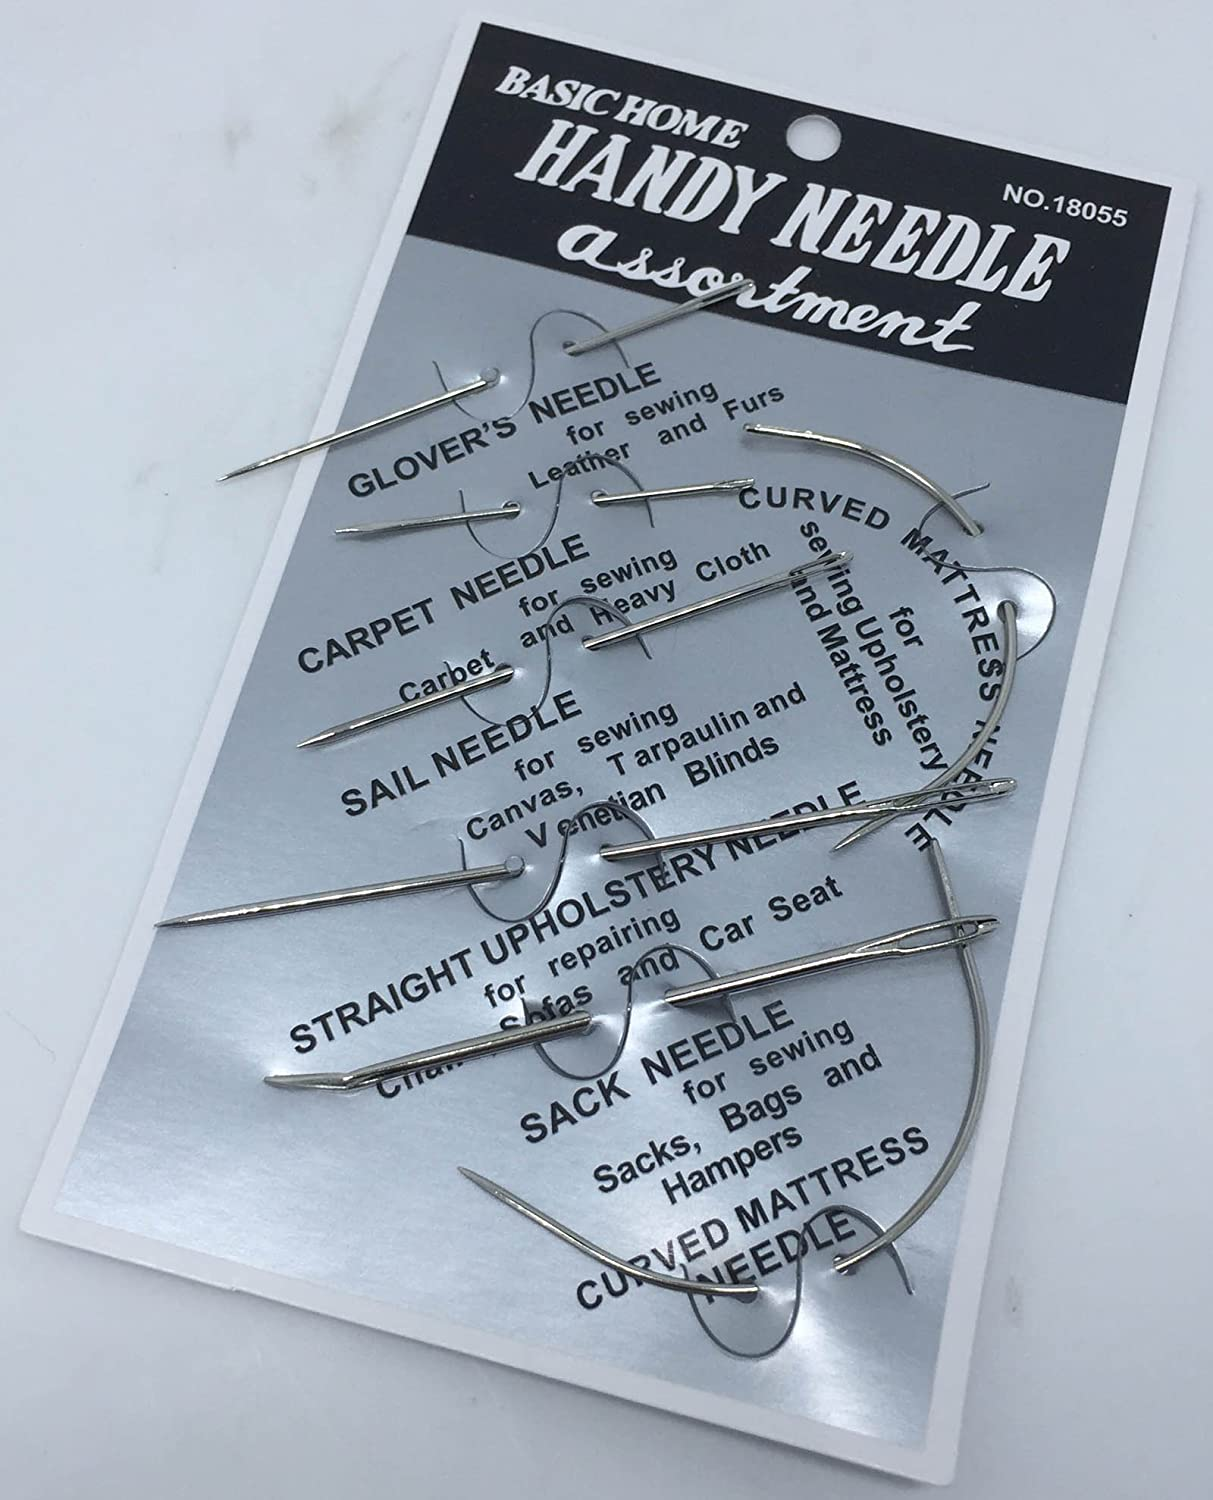 Home Handy Needles Glover/'s Leather Carpet Sail Canvas Needle Craft Set Cheap